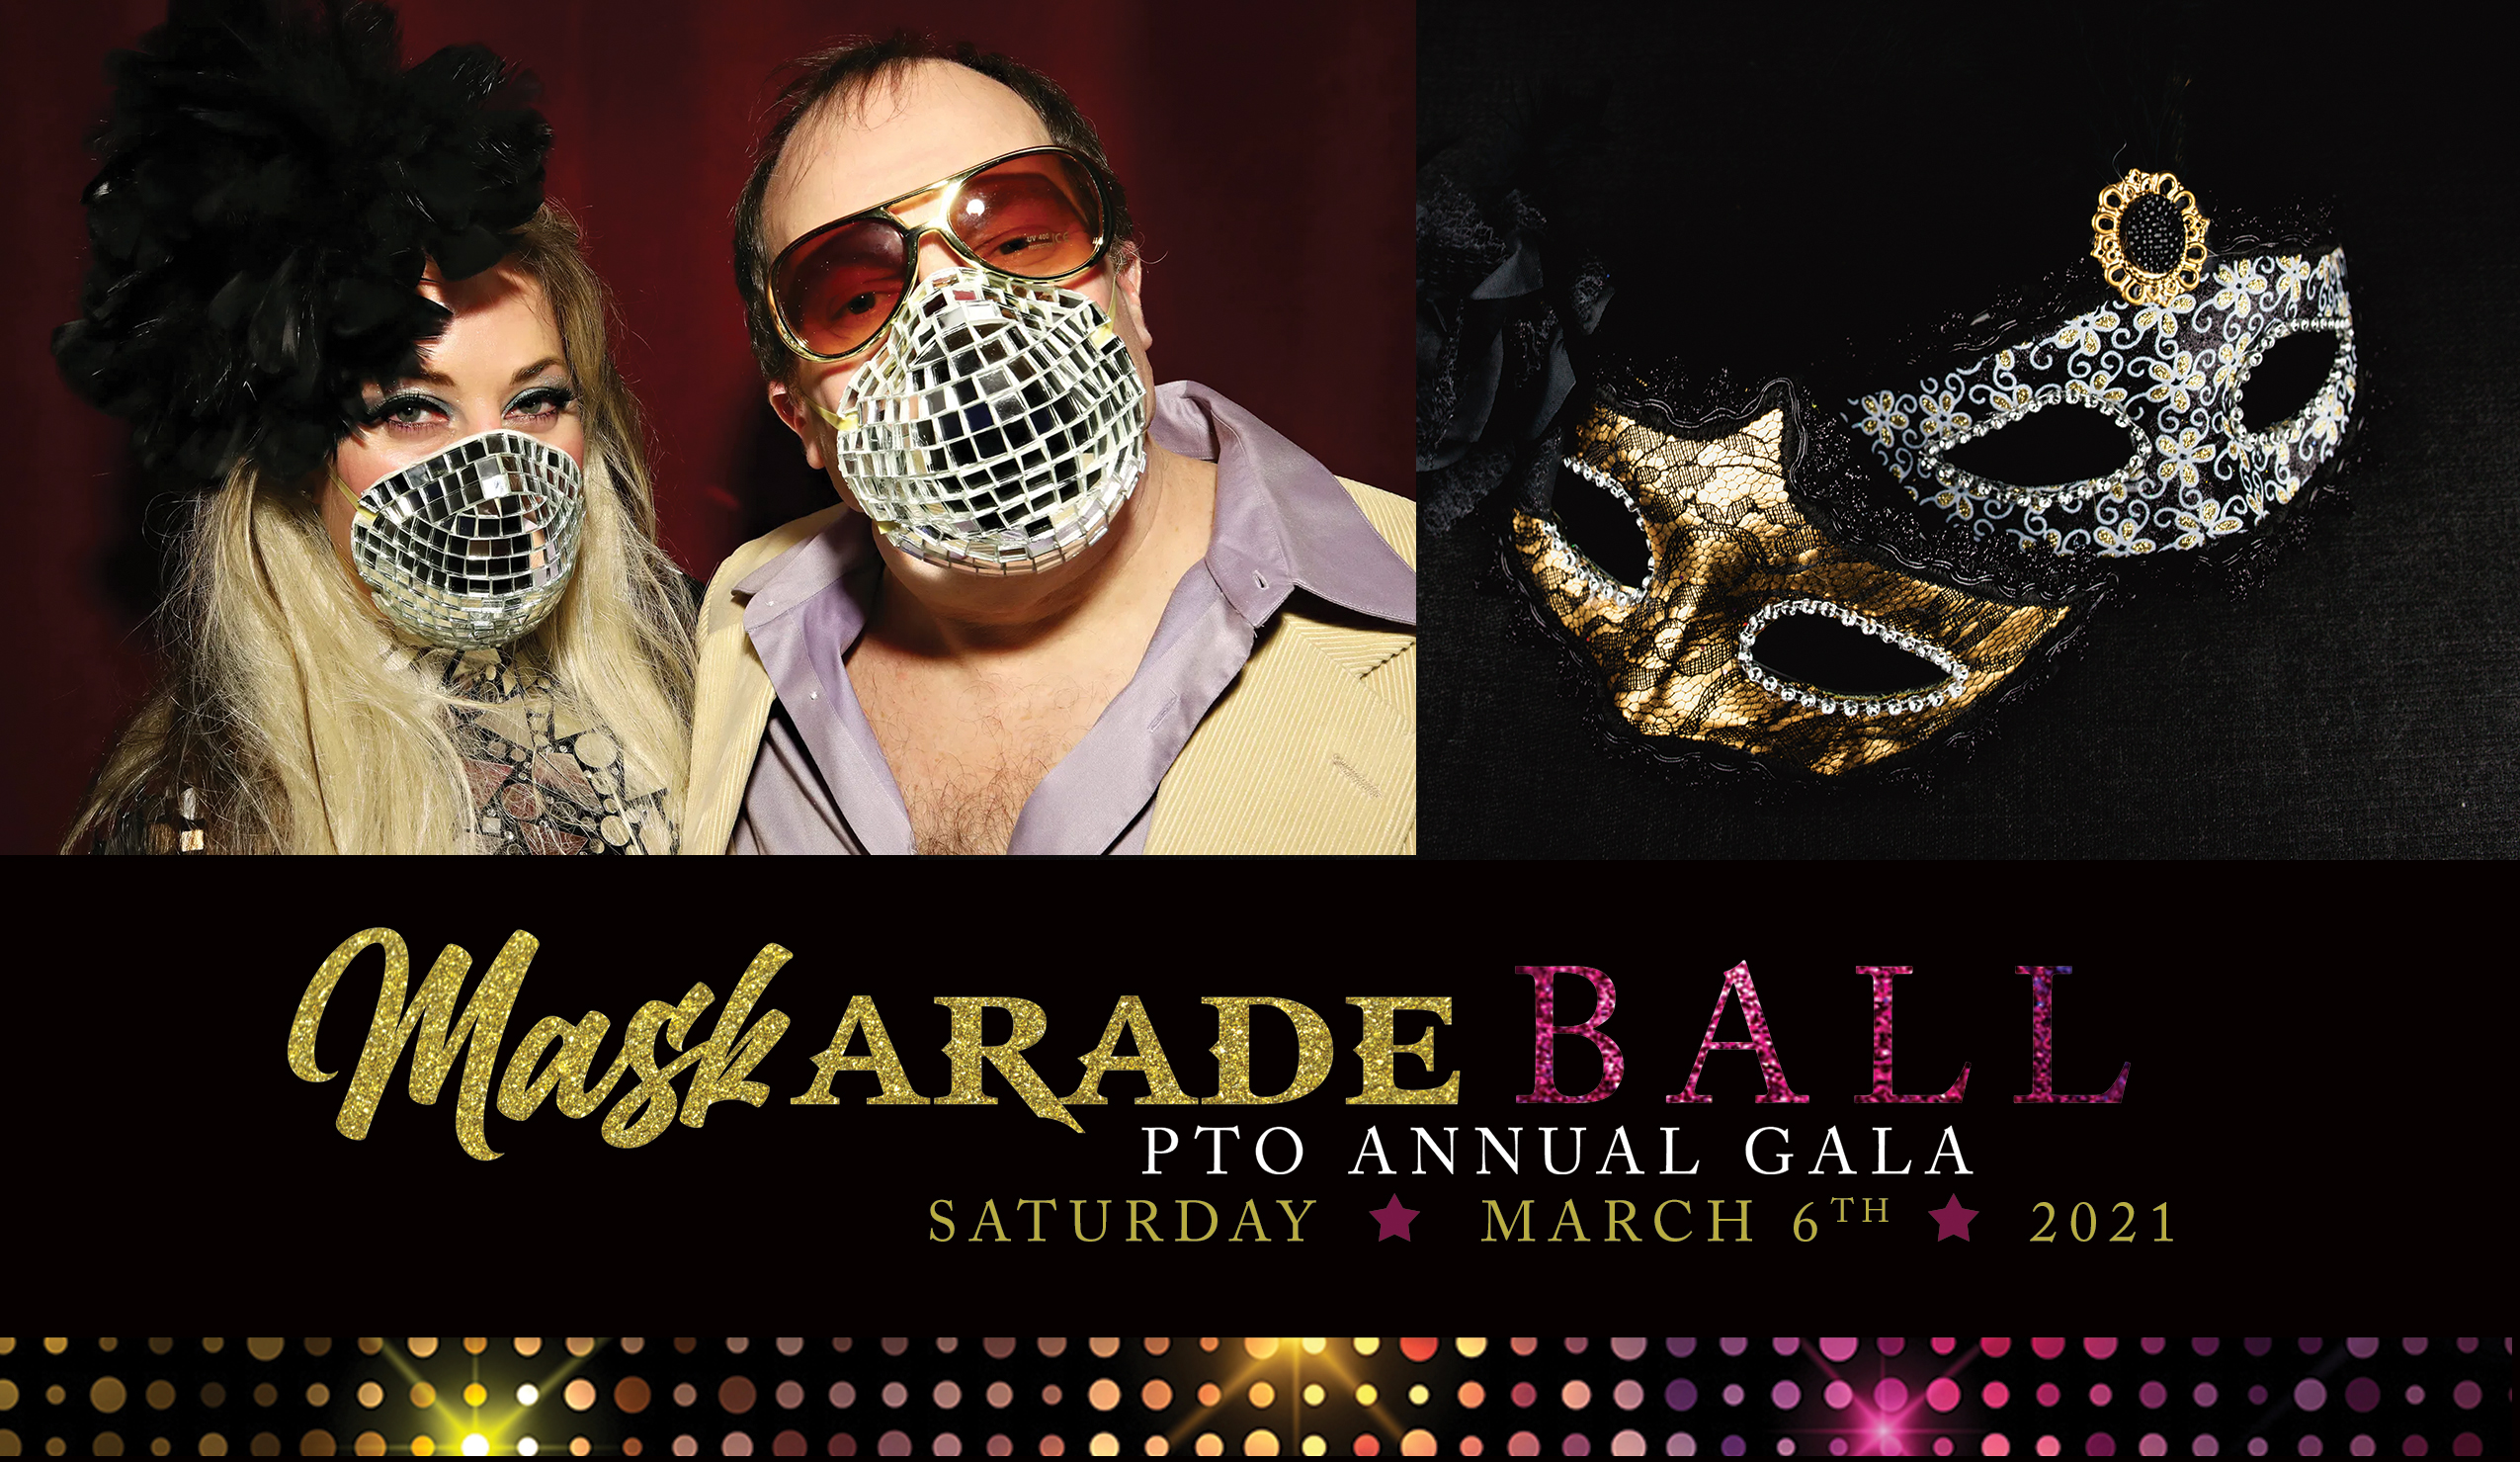 2021 Annual Gala | Mask-arade Ball